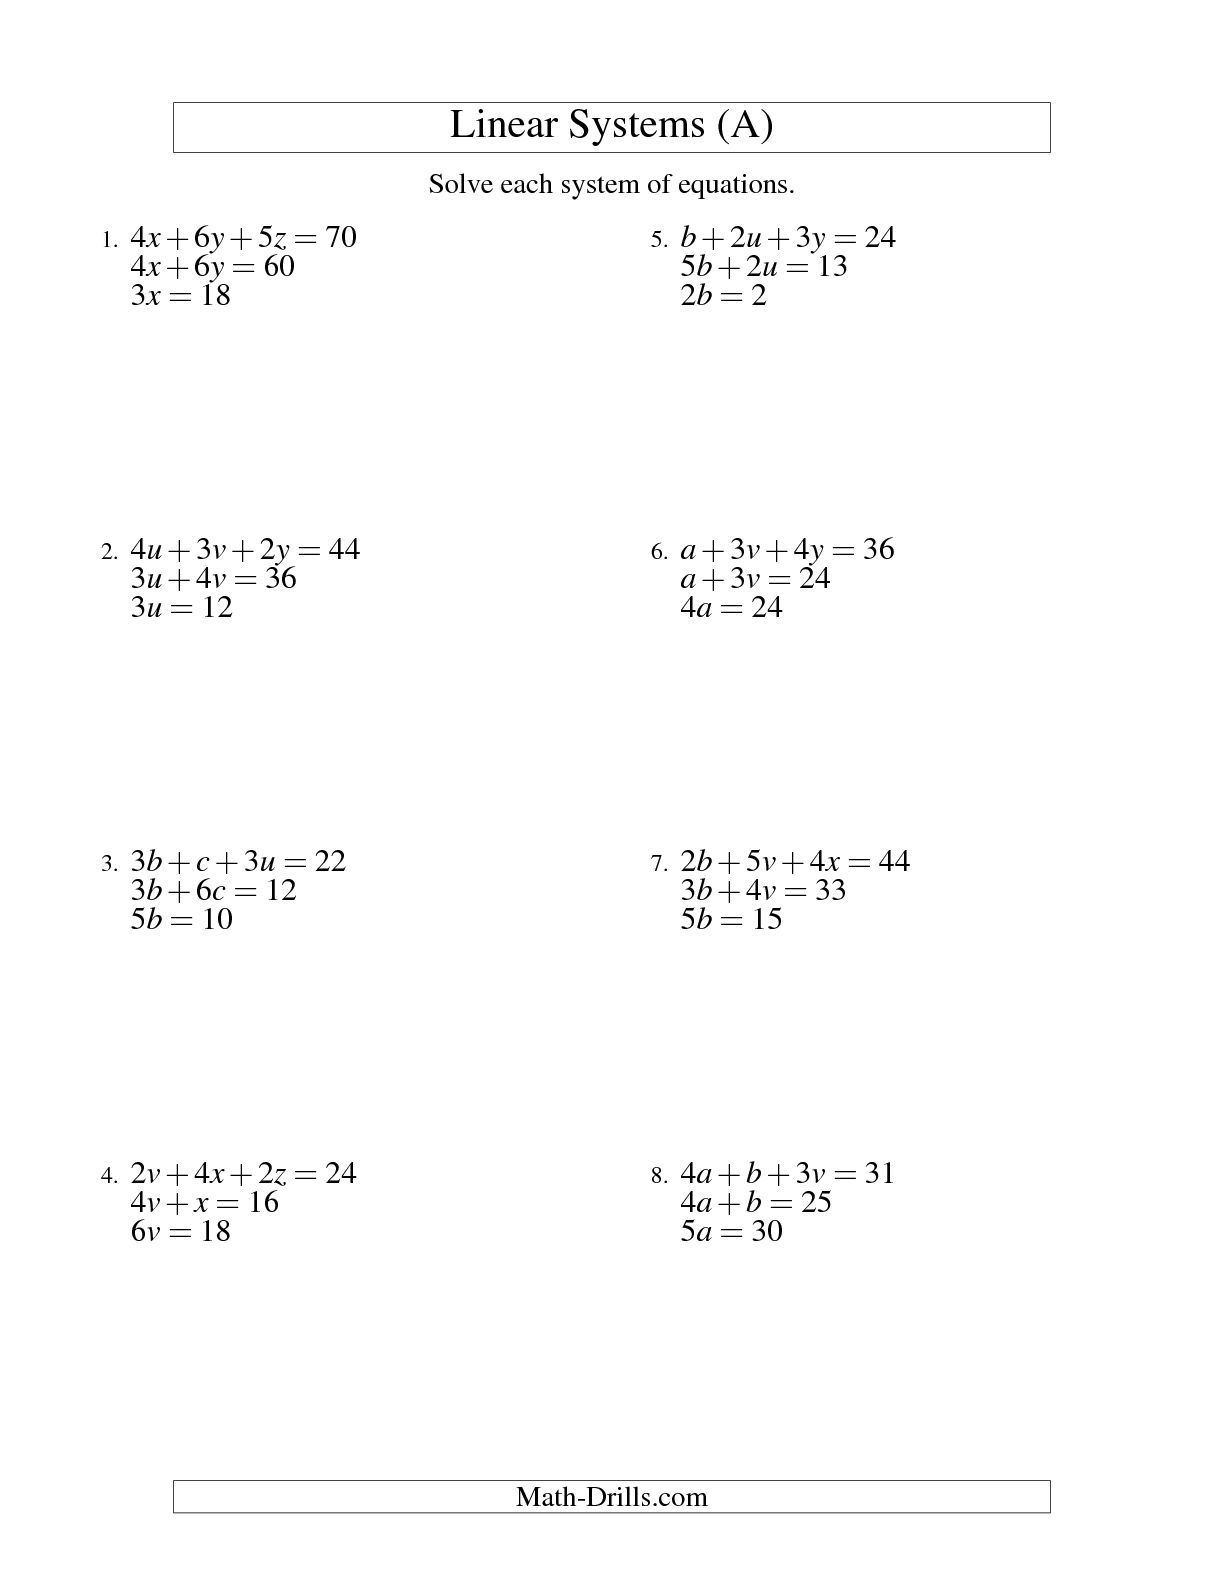 Solving Systems Of Linear Equations And Inequalities